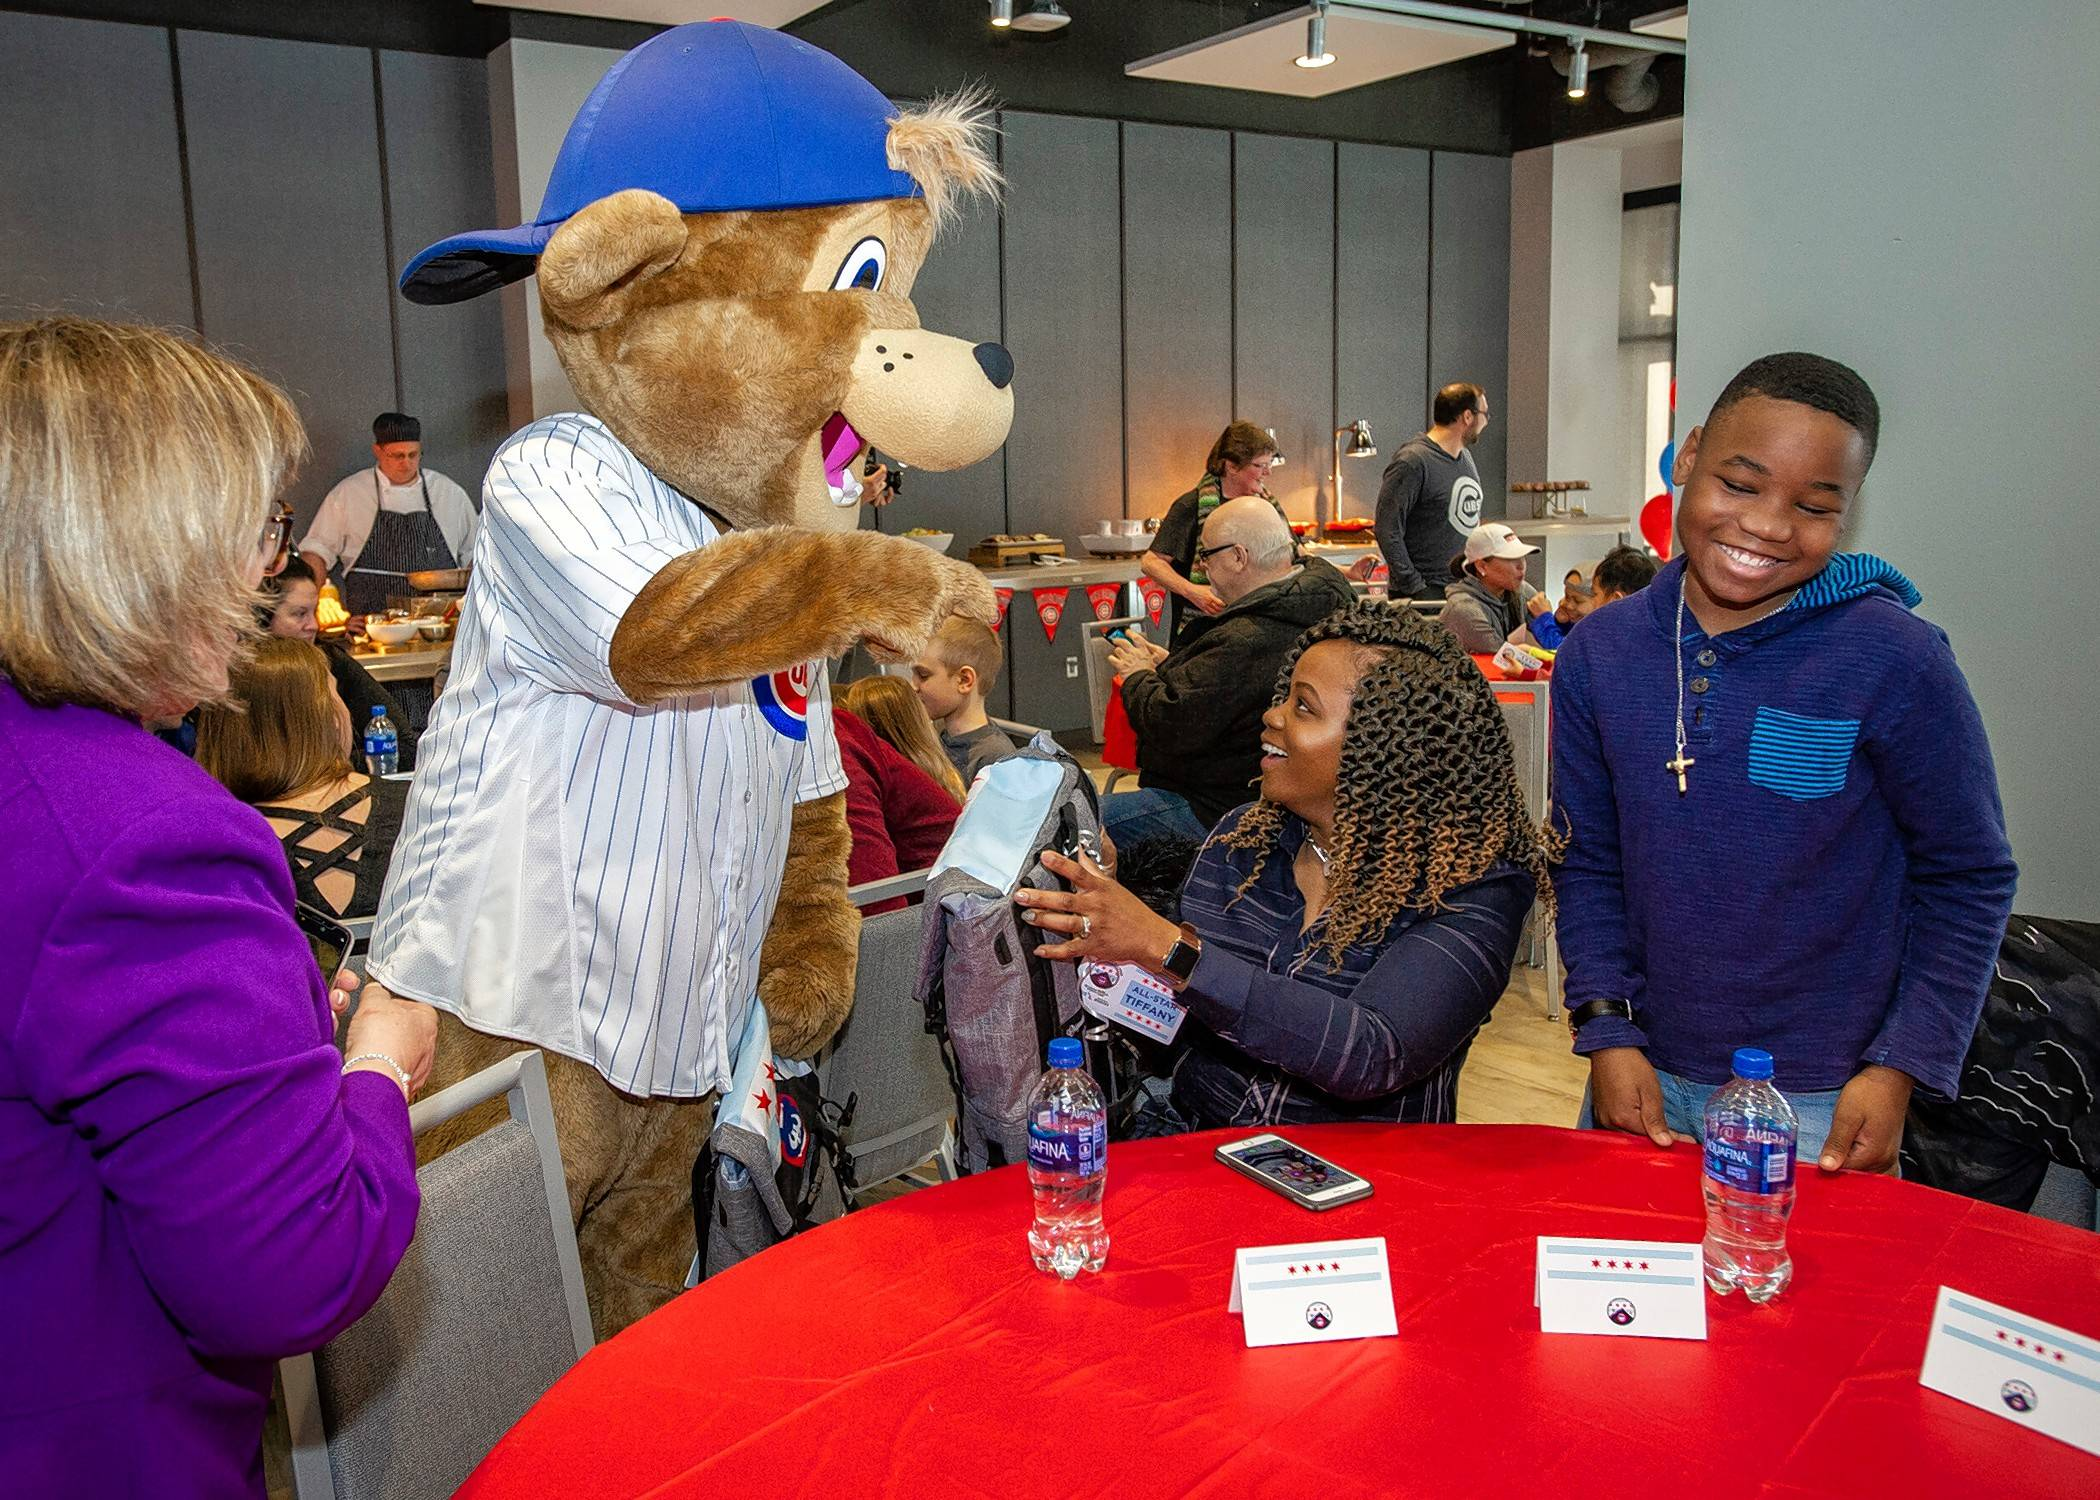 Jonathan Holiday of Bartlett, right, and his mother, Tiffany, meet Clark the Cub at the Cubs front office building Monday. Jonathan and six other children who are patients at Advocate Children's Hospital in Park Ridge were selected for a trip to Cubs spring training in Mesa, Arizona.